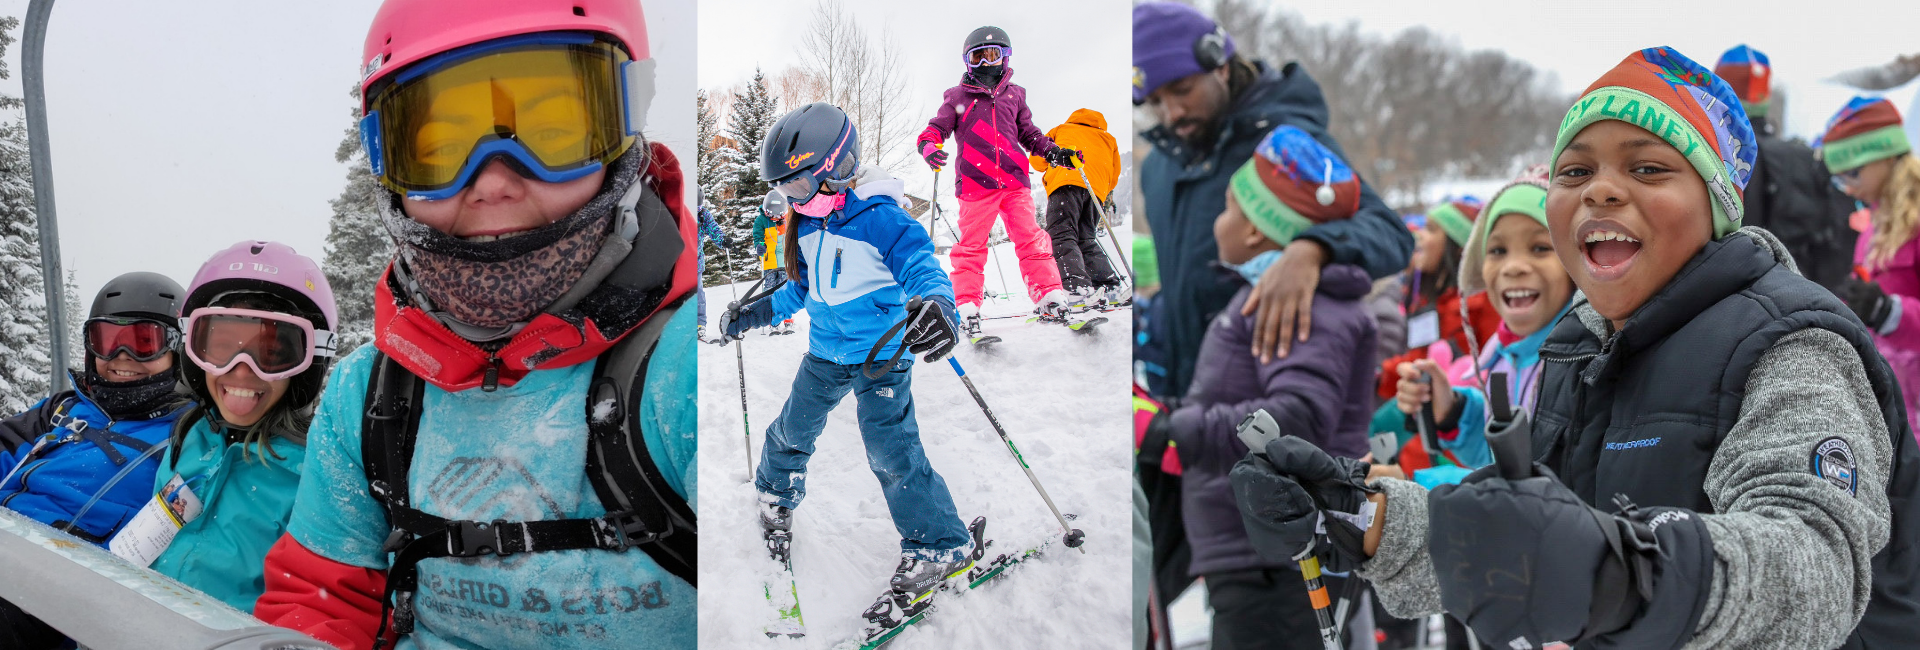 Photo from left to right: Boys & Girls Club North Lake Tahoe, Coombs Foundation / John Howland, The Loppet Foundation